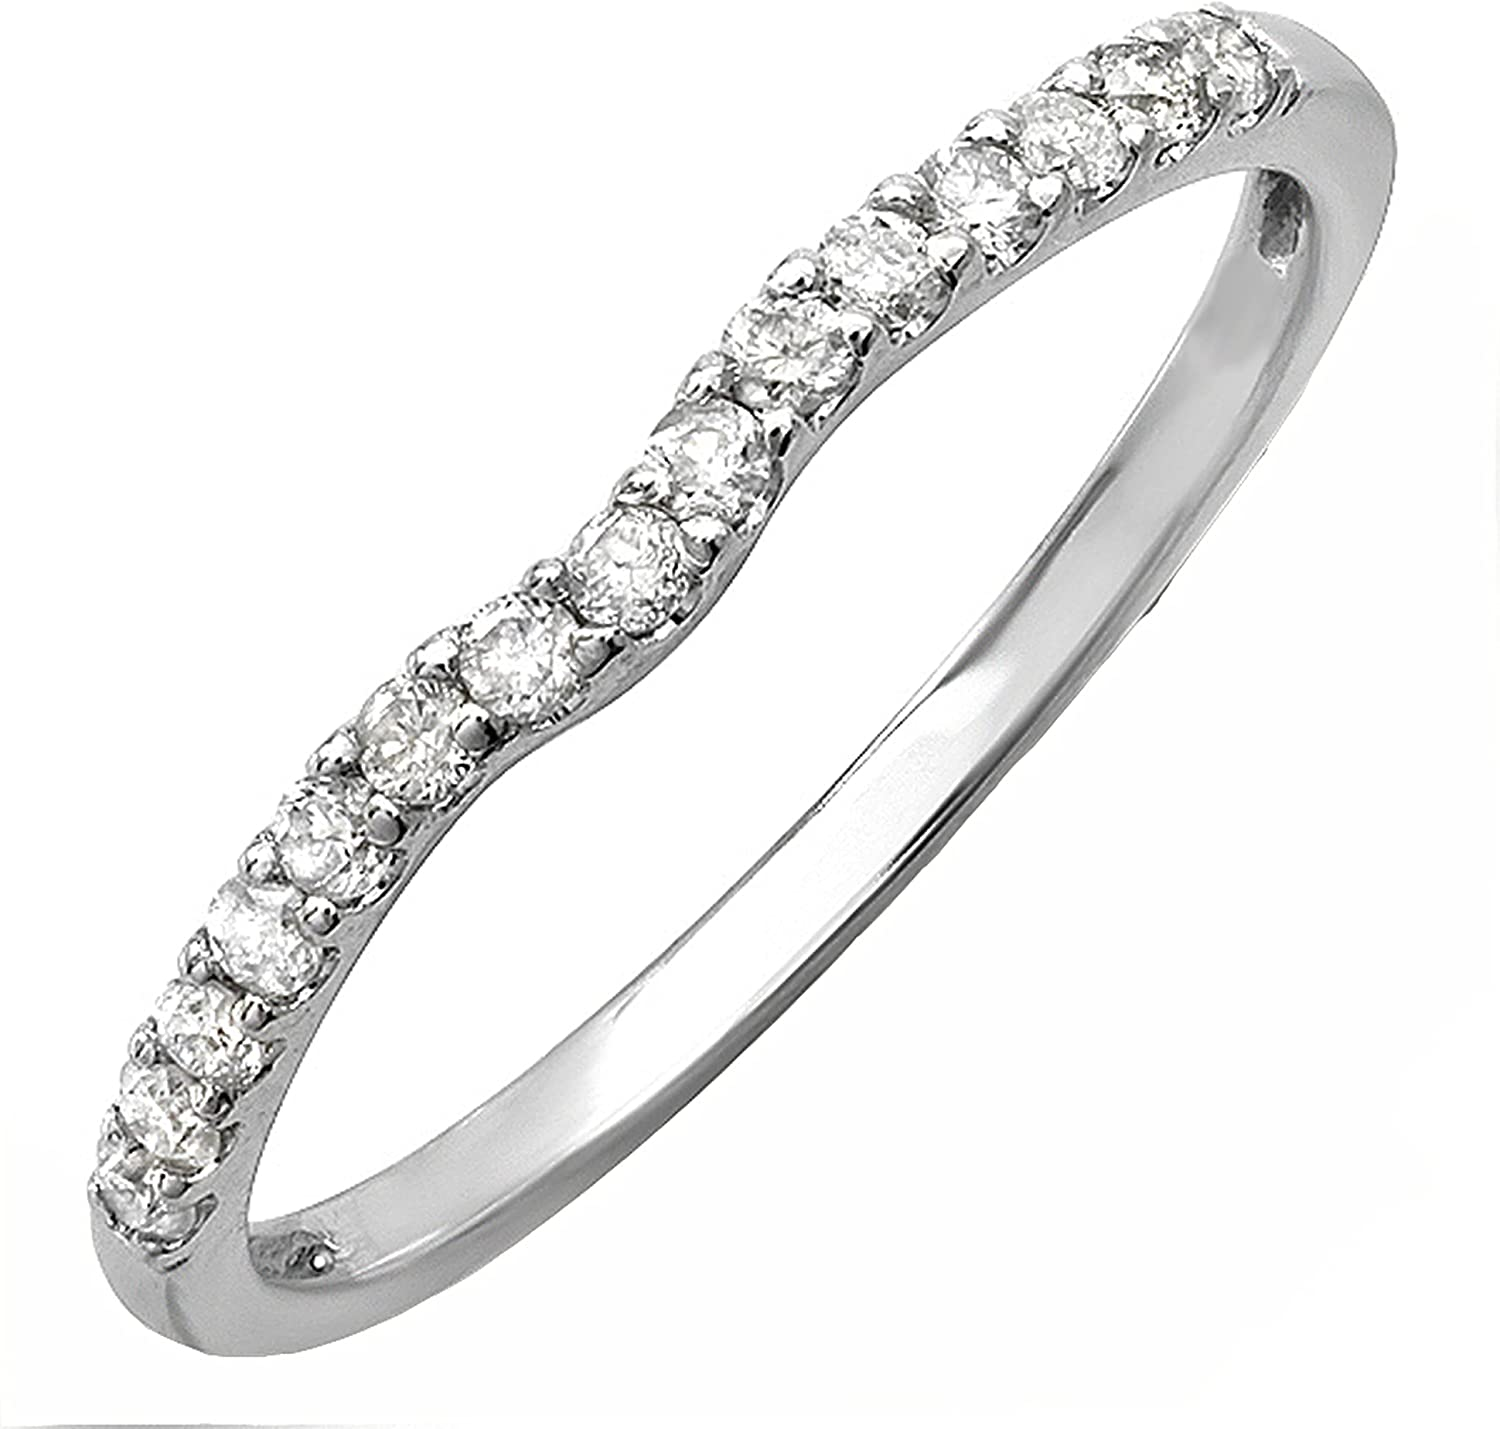 Dazzlingrock Collection 0.25 Carat (ctw) Round White Diamond Anniversary Contour Guard Petite Curve Stackable Matching Band for Her 1/4 CT   Available in 10K/14K/18K Gold